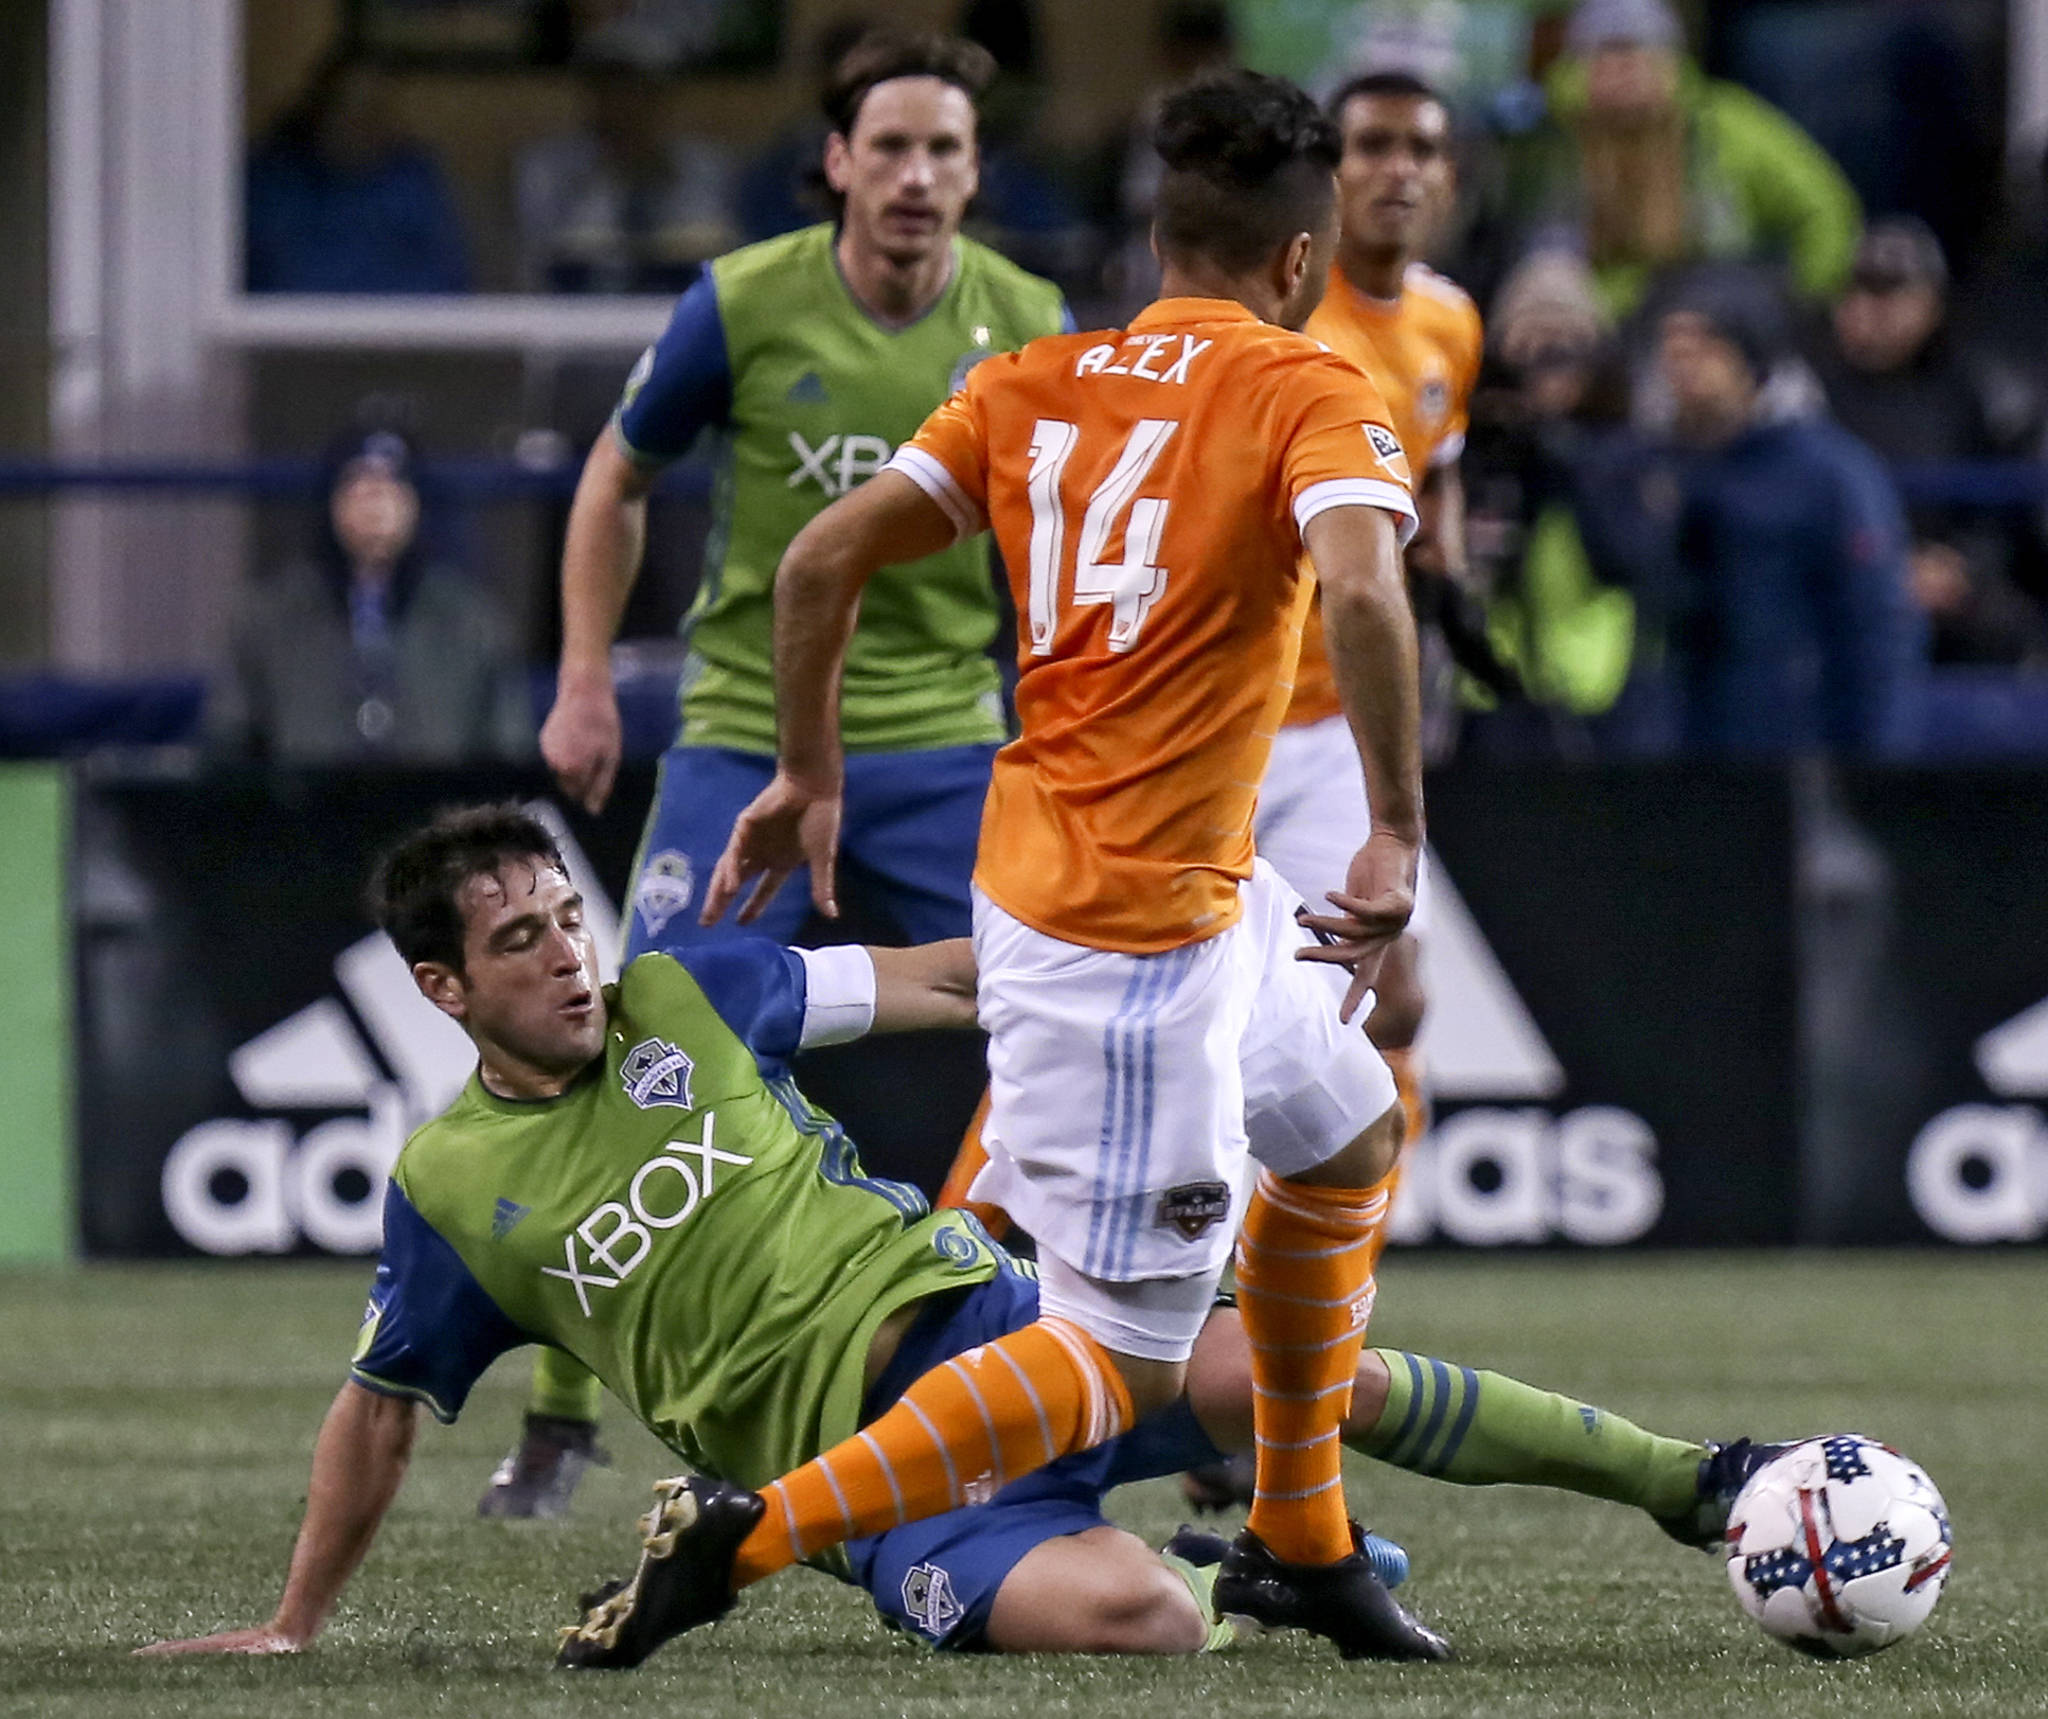 Seattle's Nicolas Lodeiro slides to dislodge the ball from Houston's Alex in the first half of the Western Conference Finals at CenturyLink Field in Seattle on Nov. 30. (Kevin Clark / The Herald)